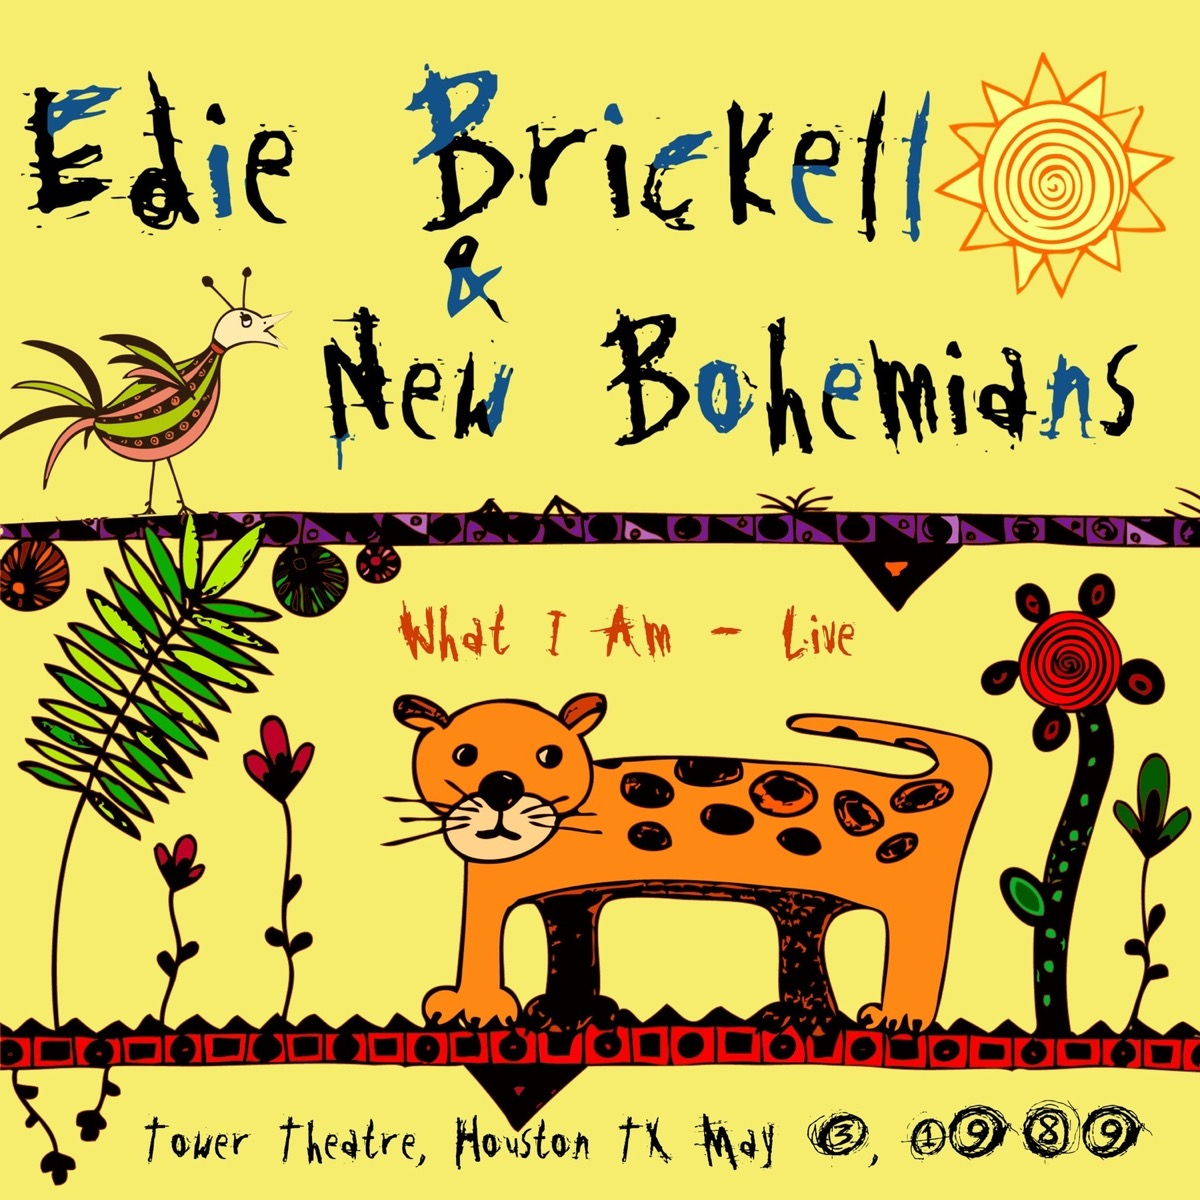 Edie brickell and the new bohemians lyrics